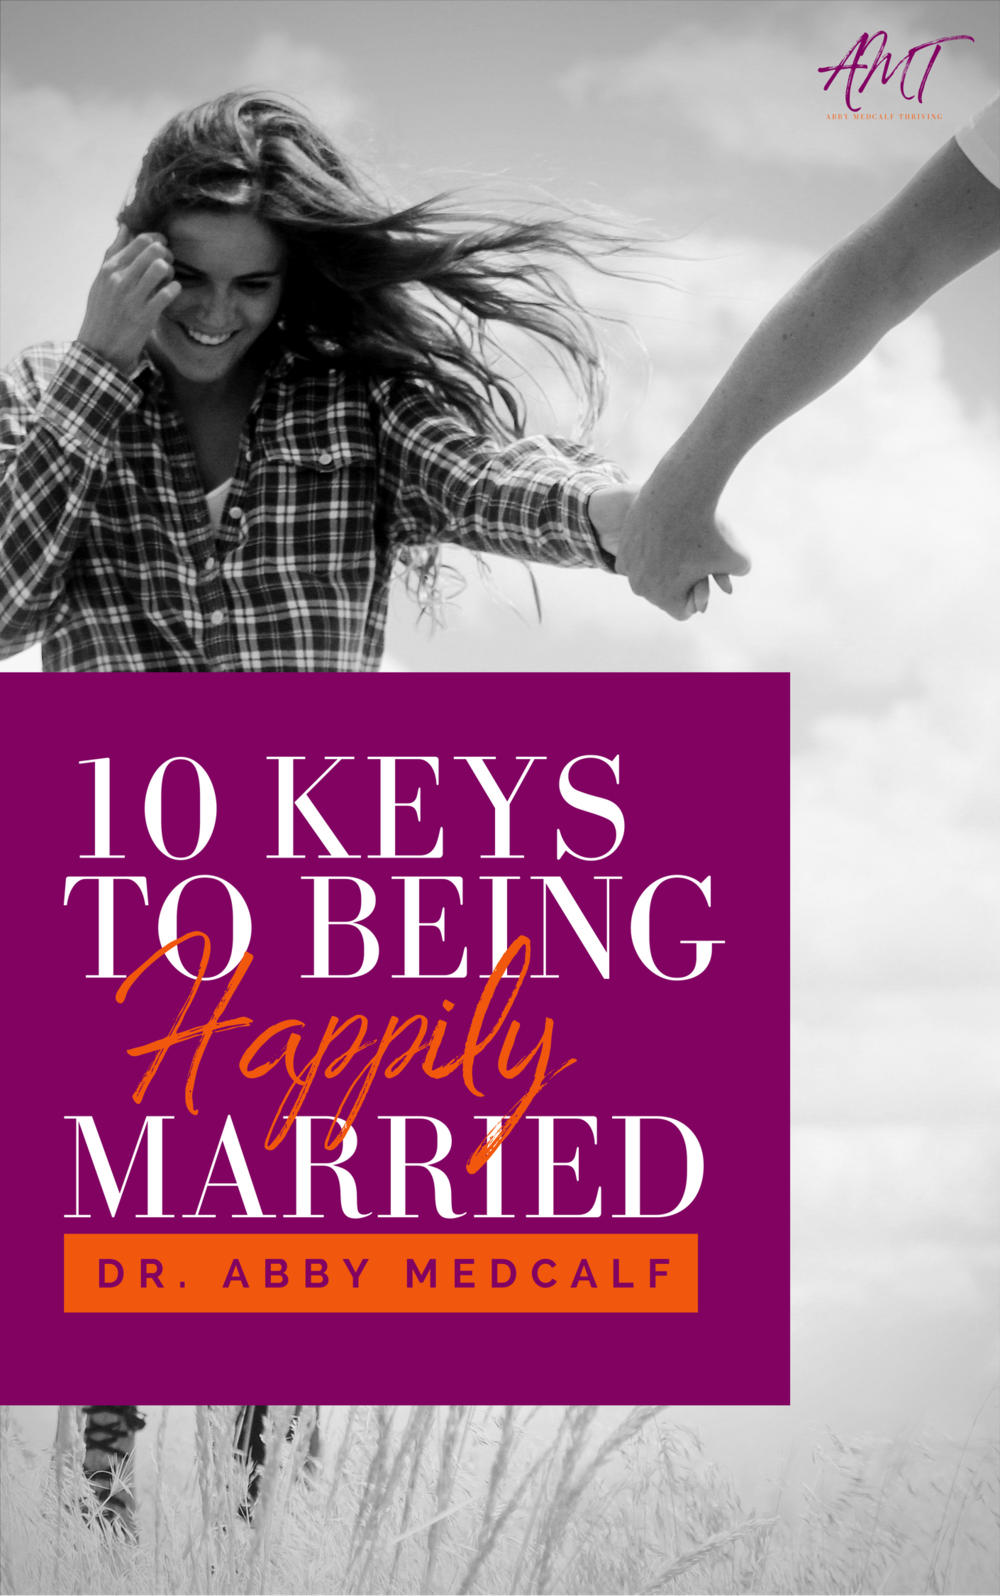 10 Keys to Being Happily Married by Dr. Abby Medcalf